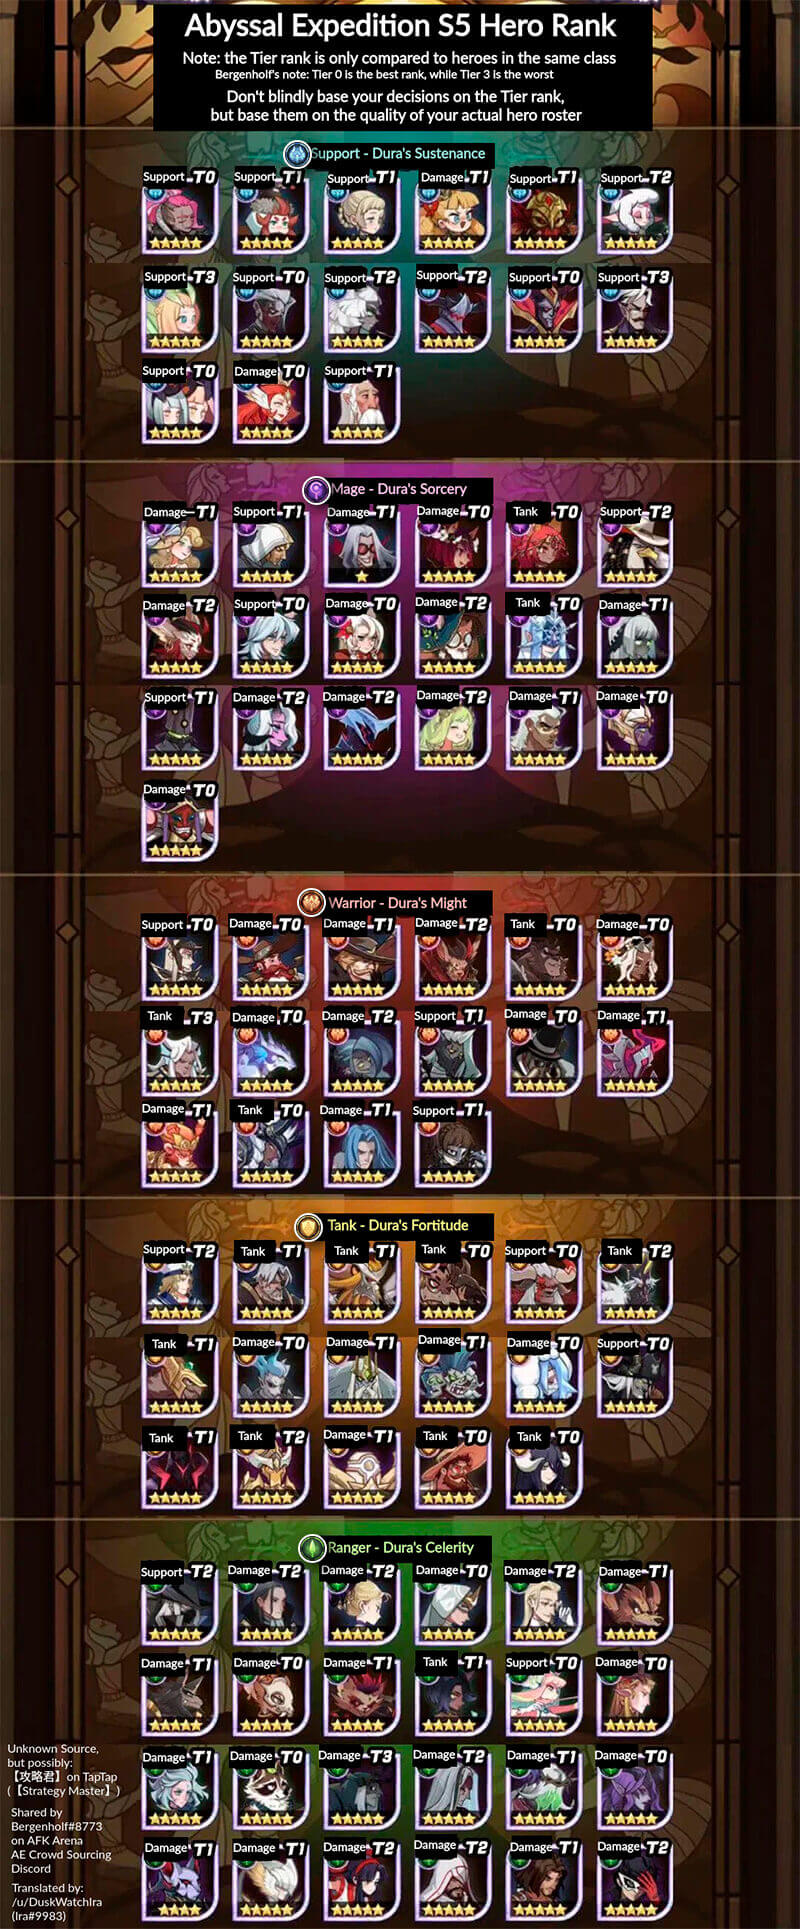 abyssal expedition hero ranking